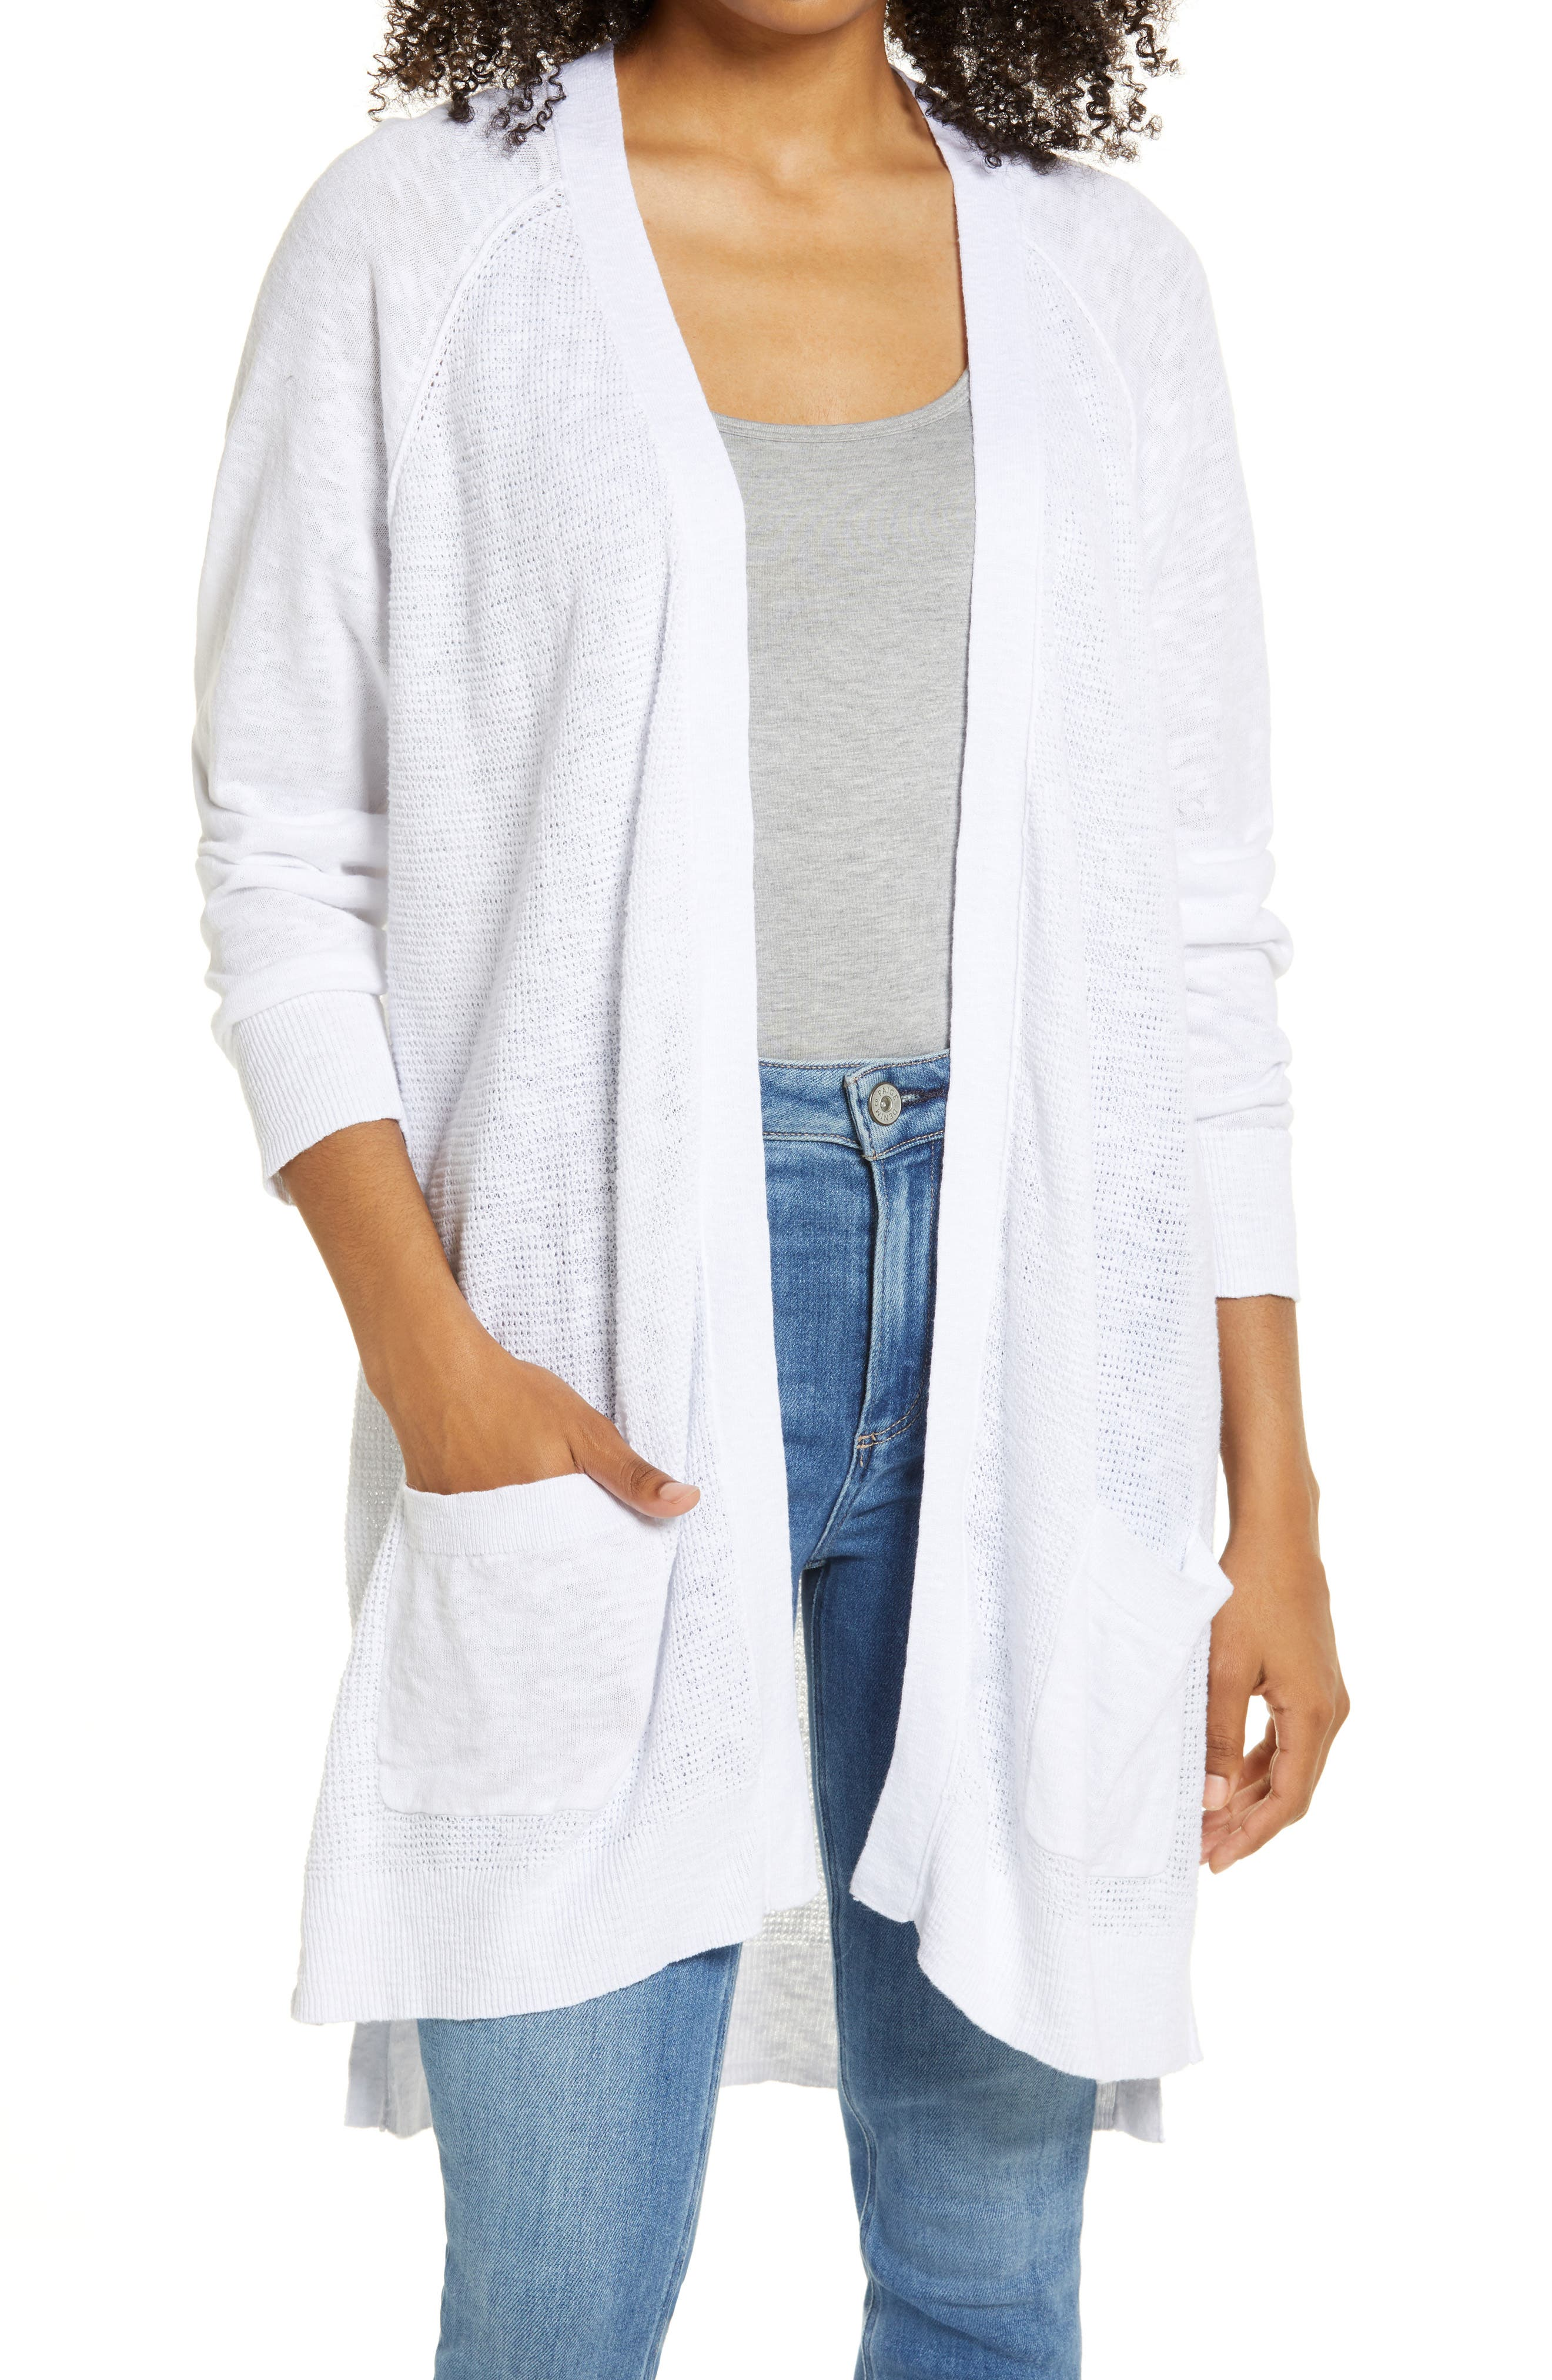 This slubbed longline cardigan made from an airy blend of linen and cotton is perfect for warm-weather layering. Style Name: Caslon Linen & Cotton Cardigan. Style Number: 6005944. Available in stores.